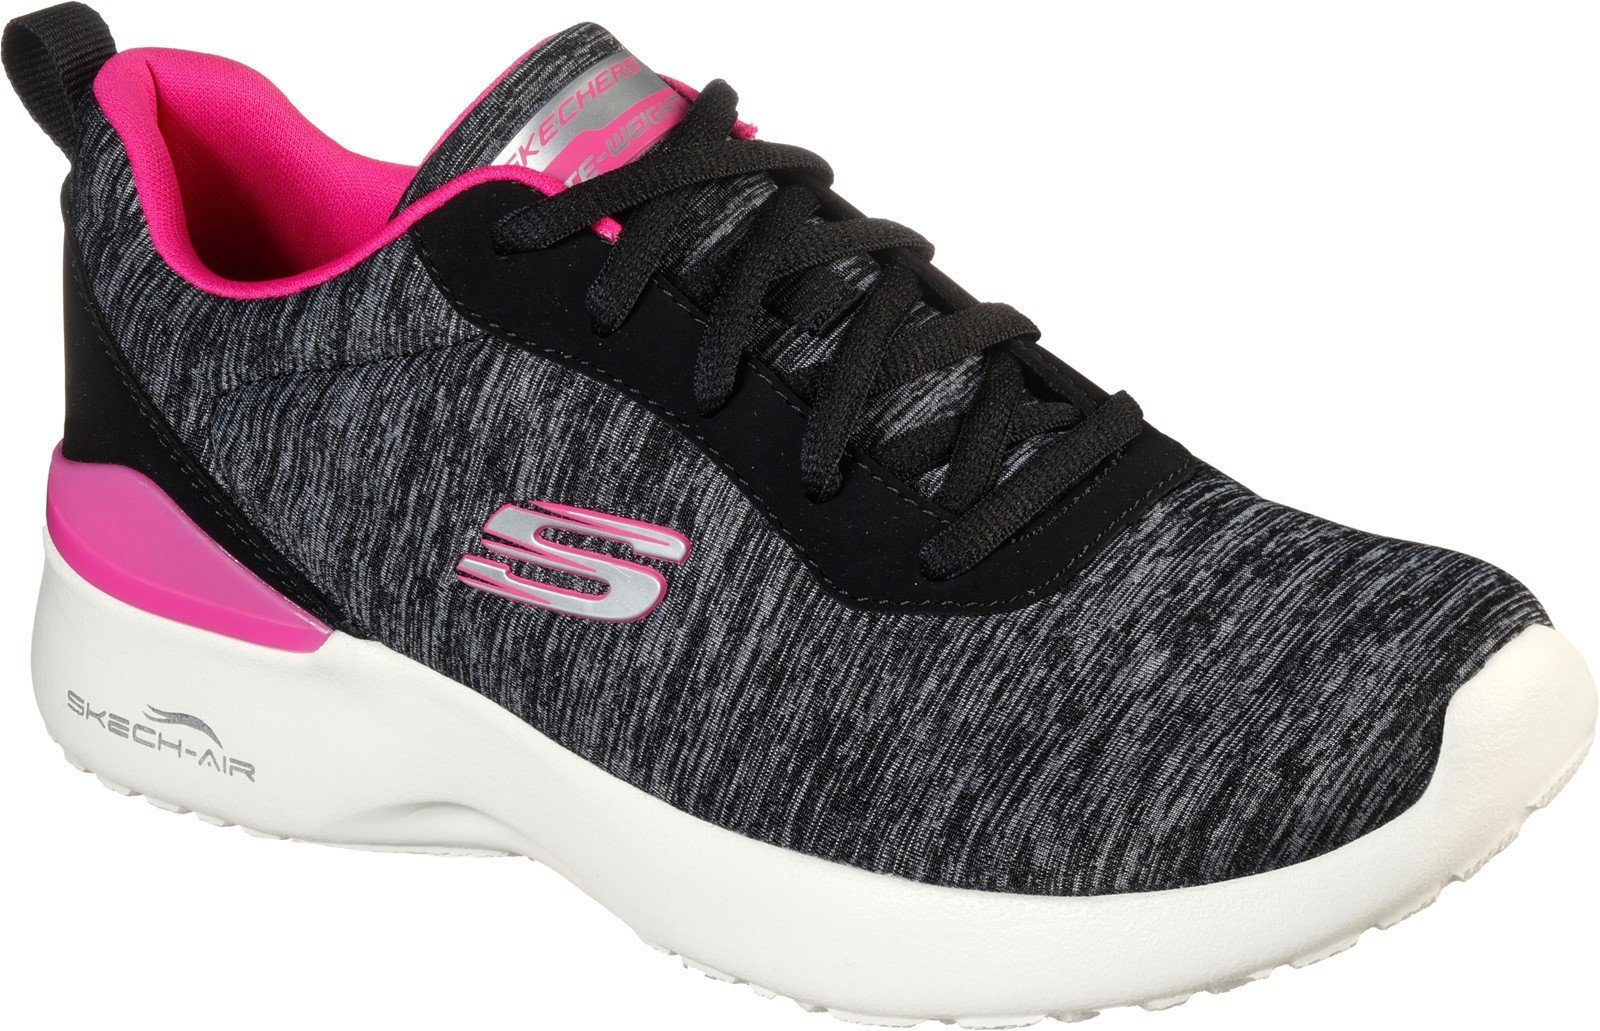 Skechers Women's Skech-Air Dynamight Sport Trainer Various Colours 32118 - Black/Hot Pink 3